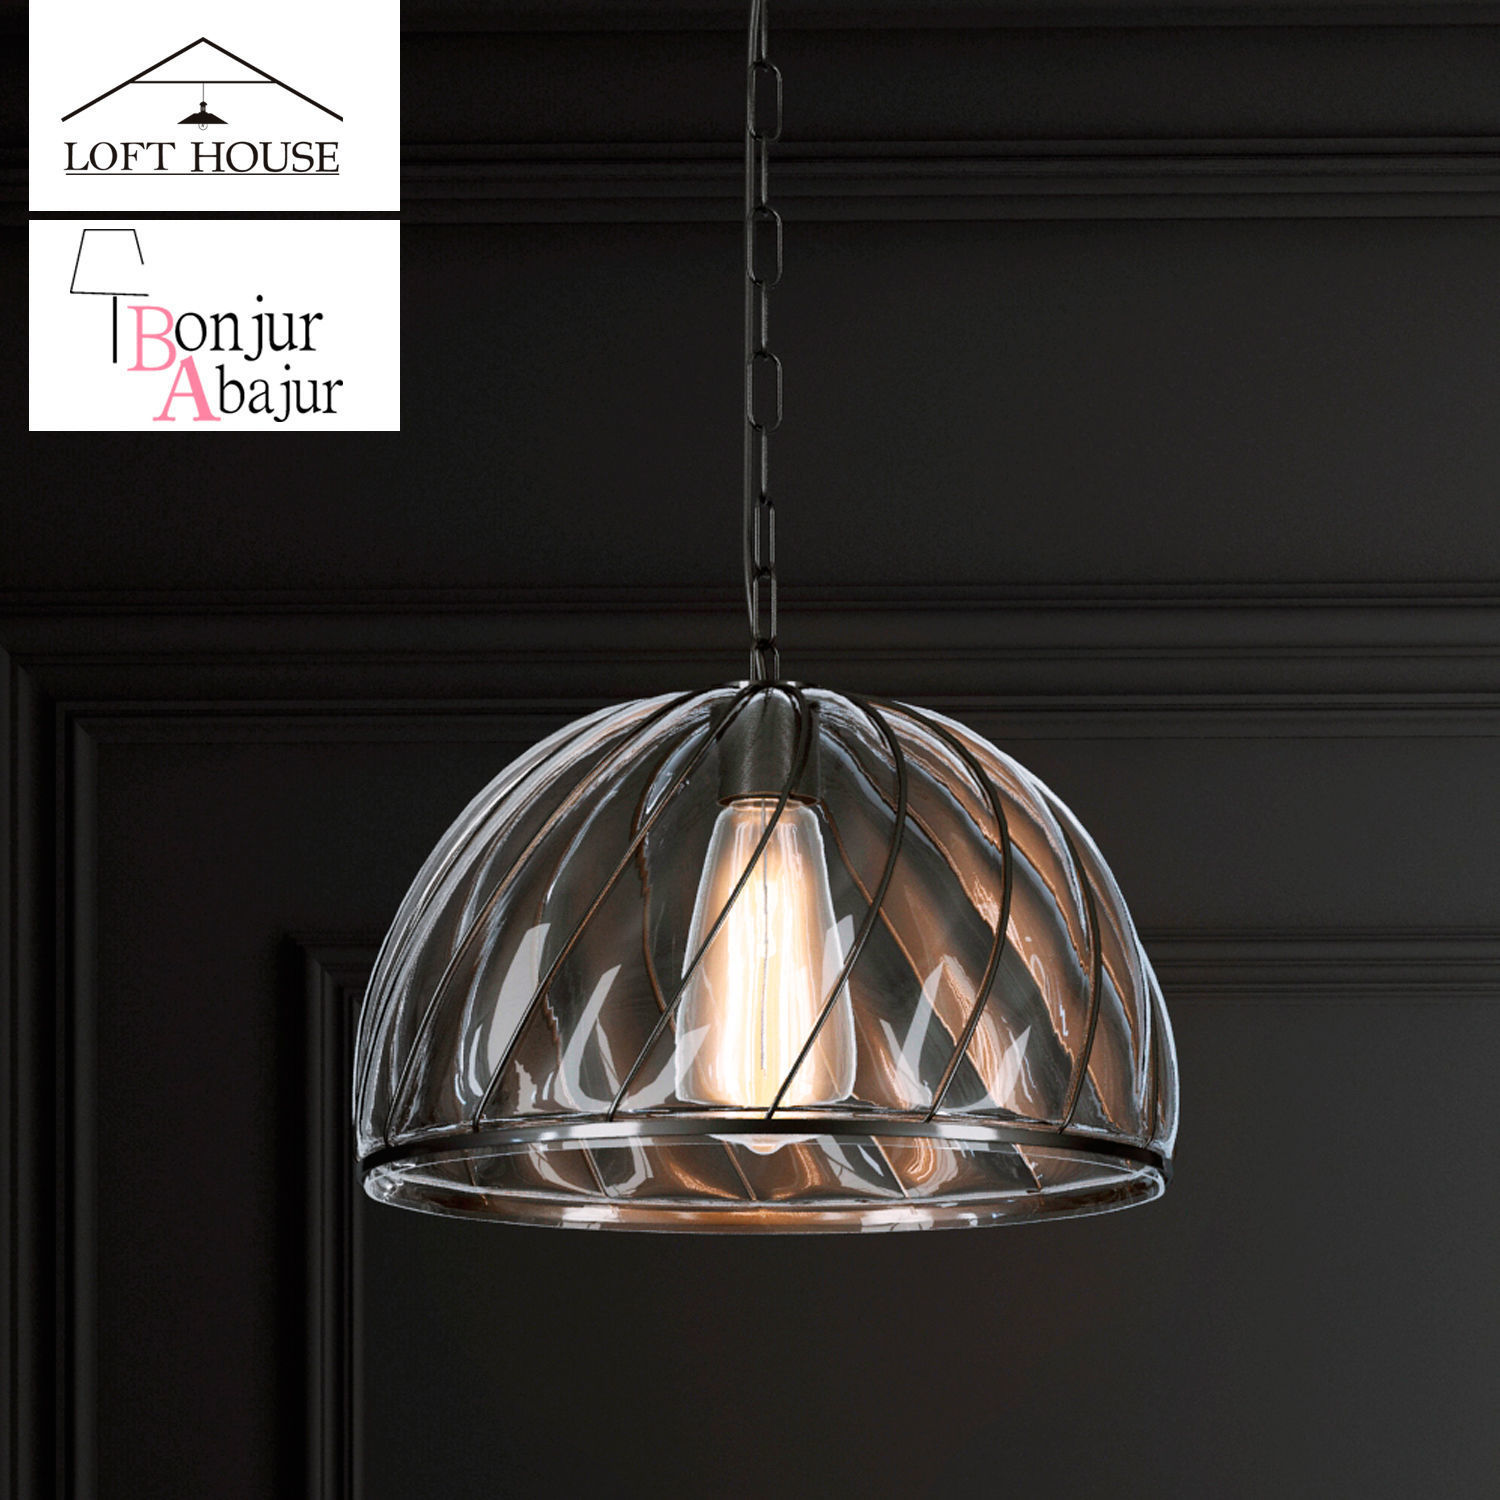 Hanging lamp LOFT HOUSE P-165